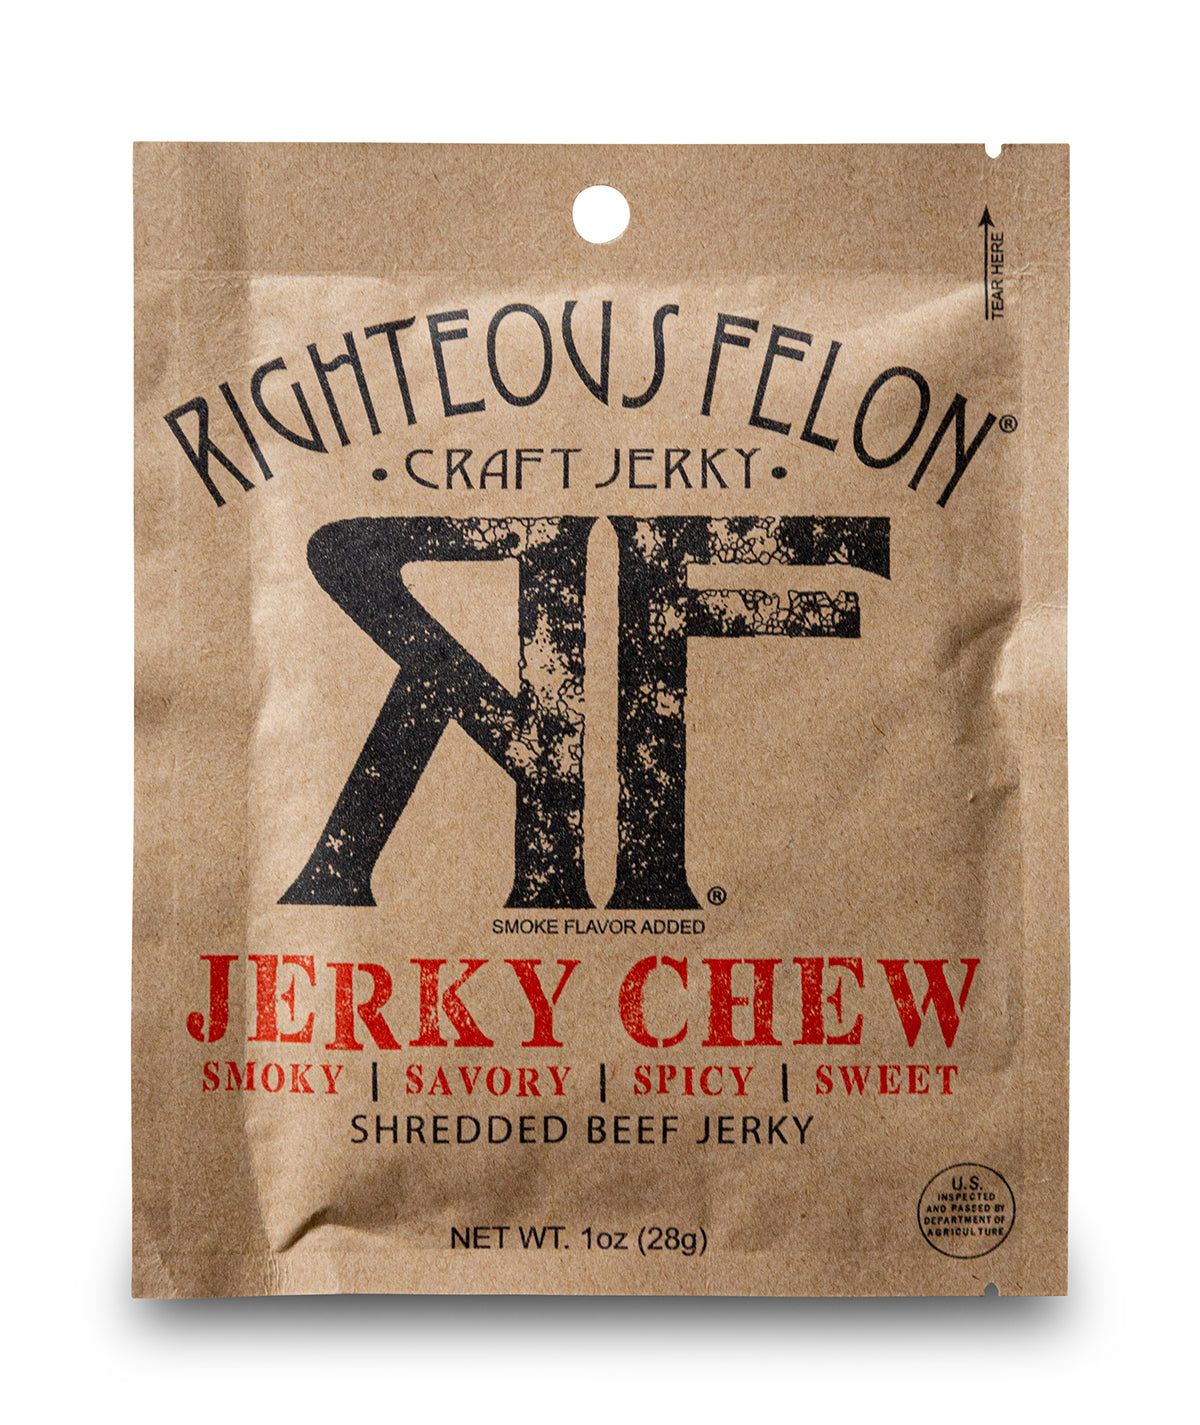 4pk - Shredded Jerky Chew